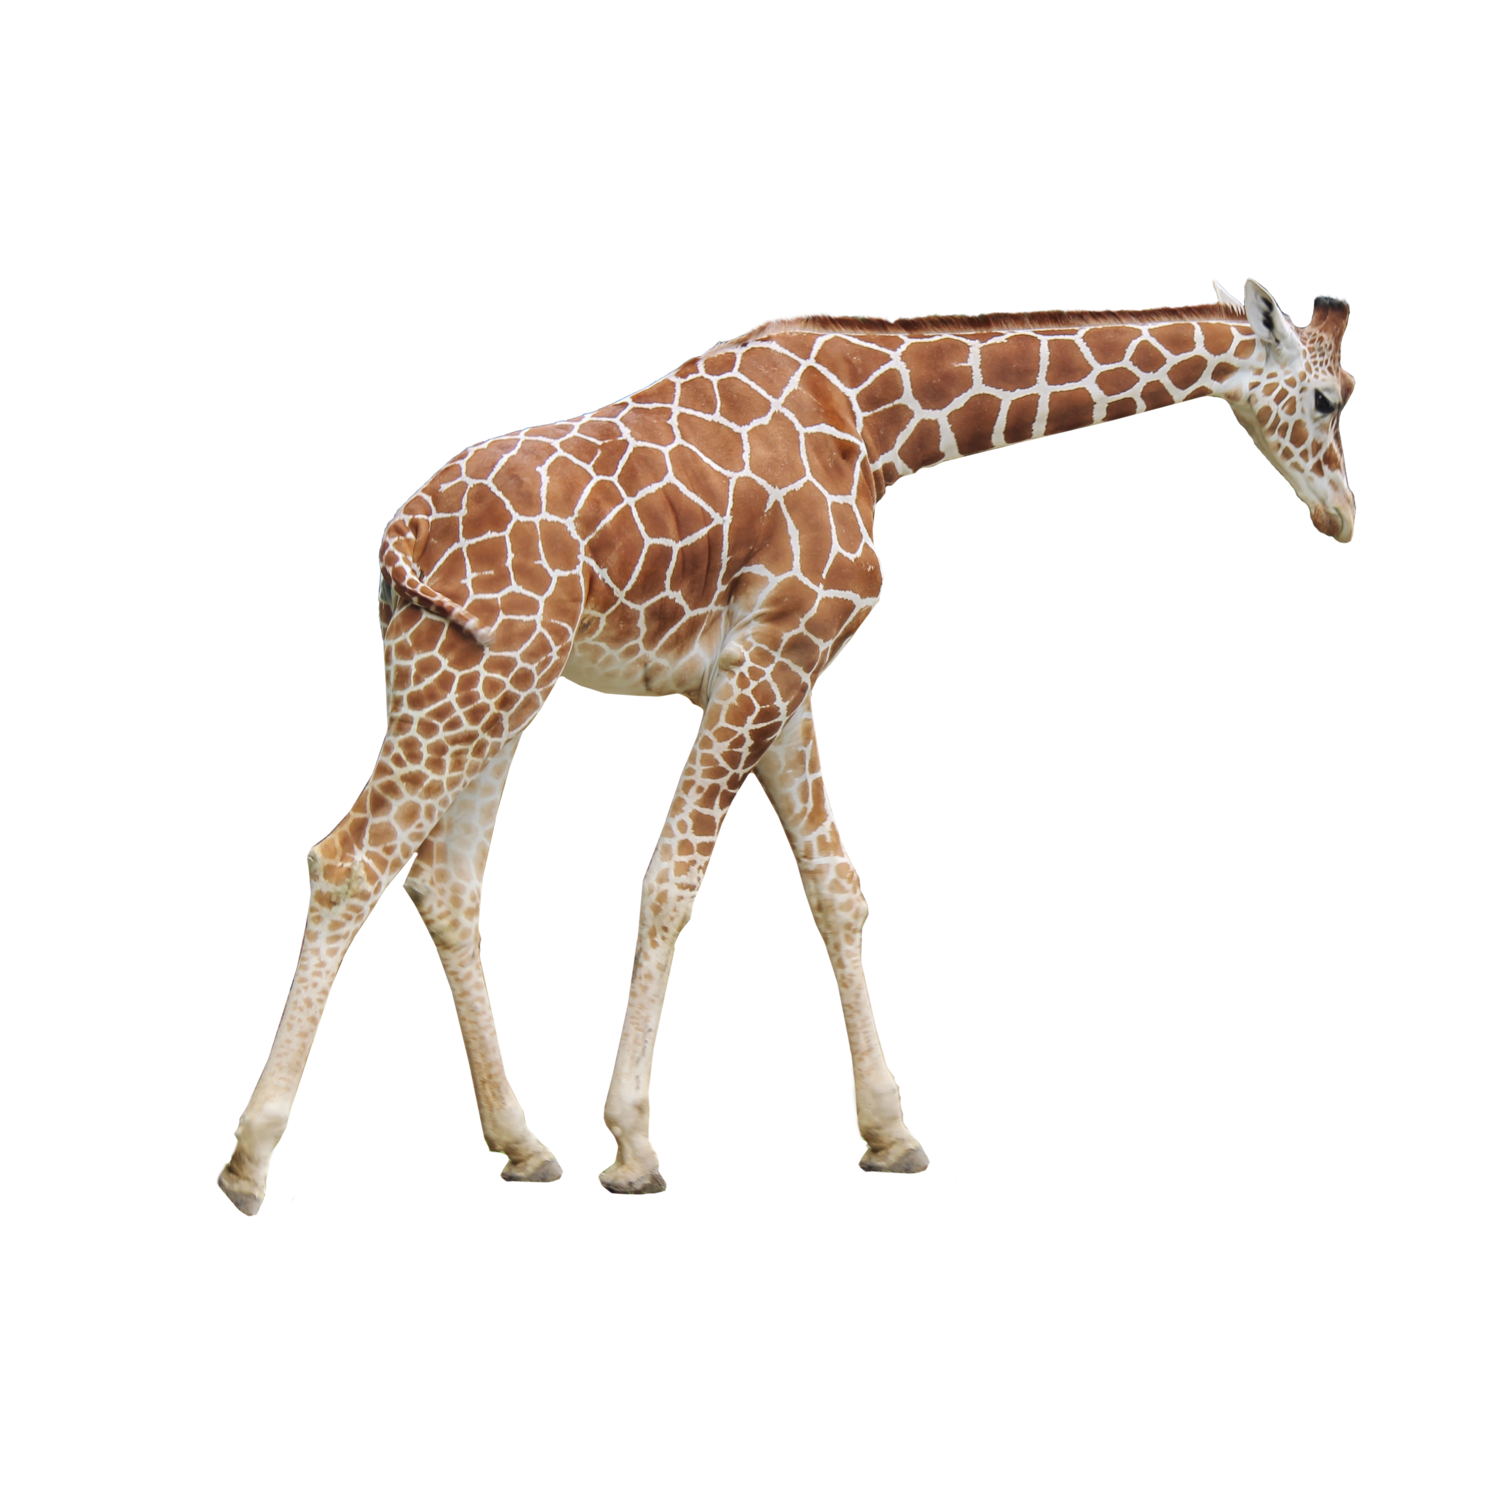 Giraffe png. Transparent images all picture